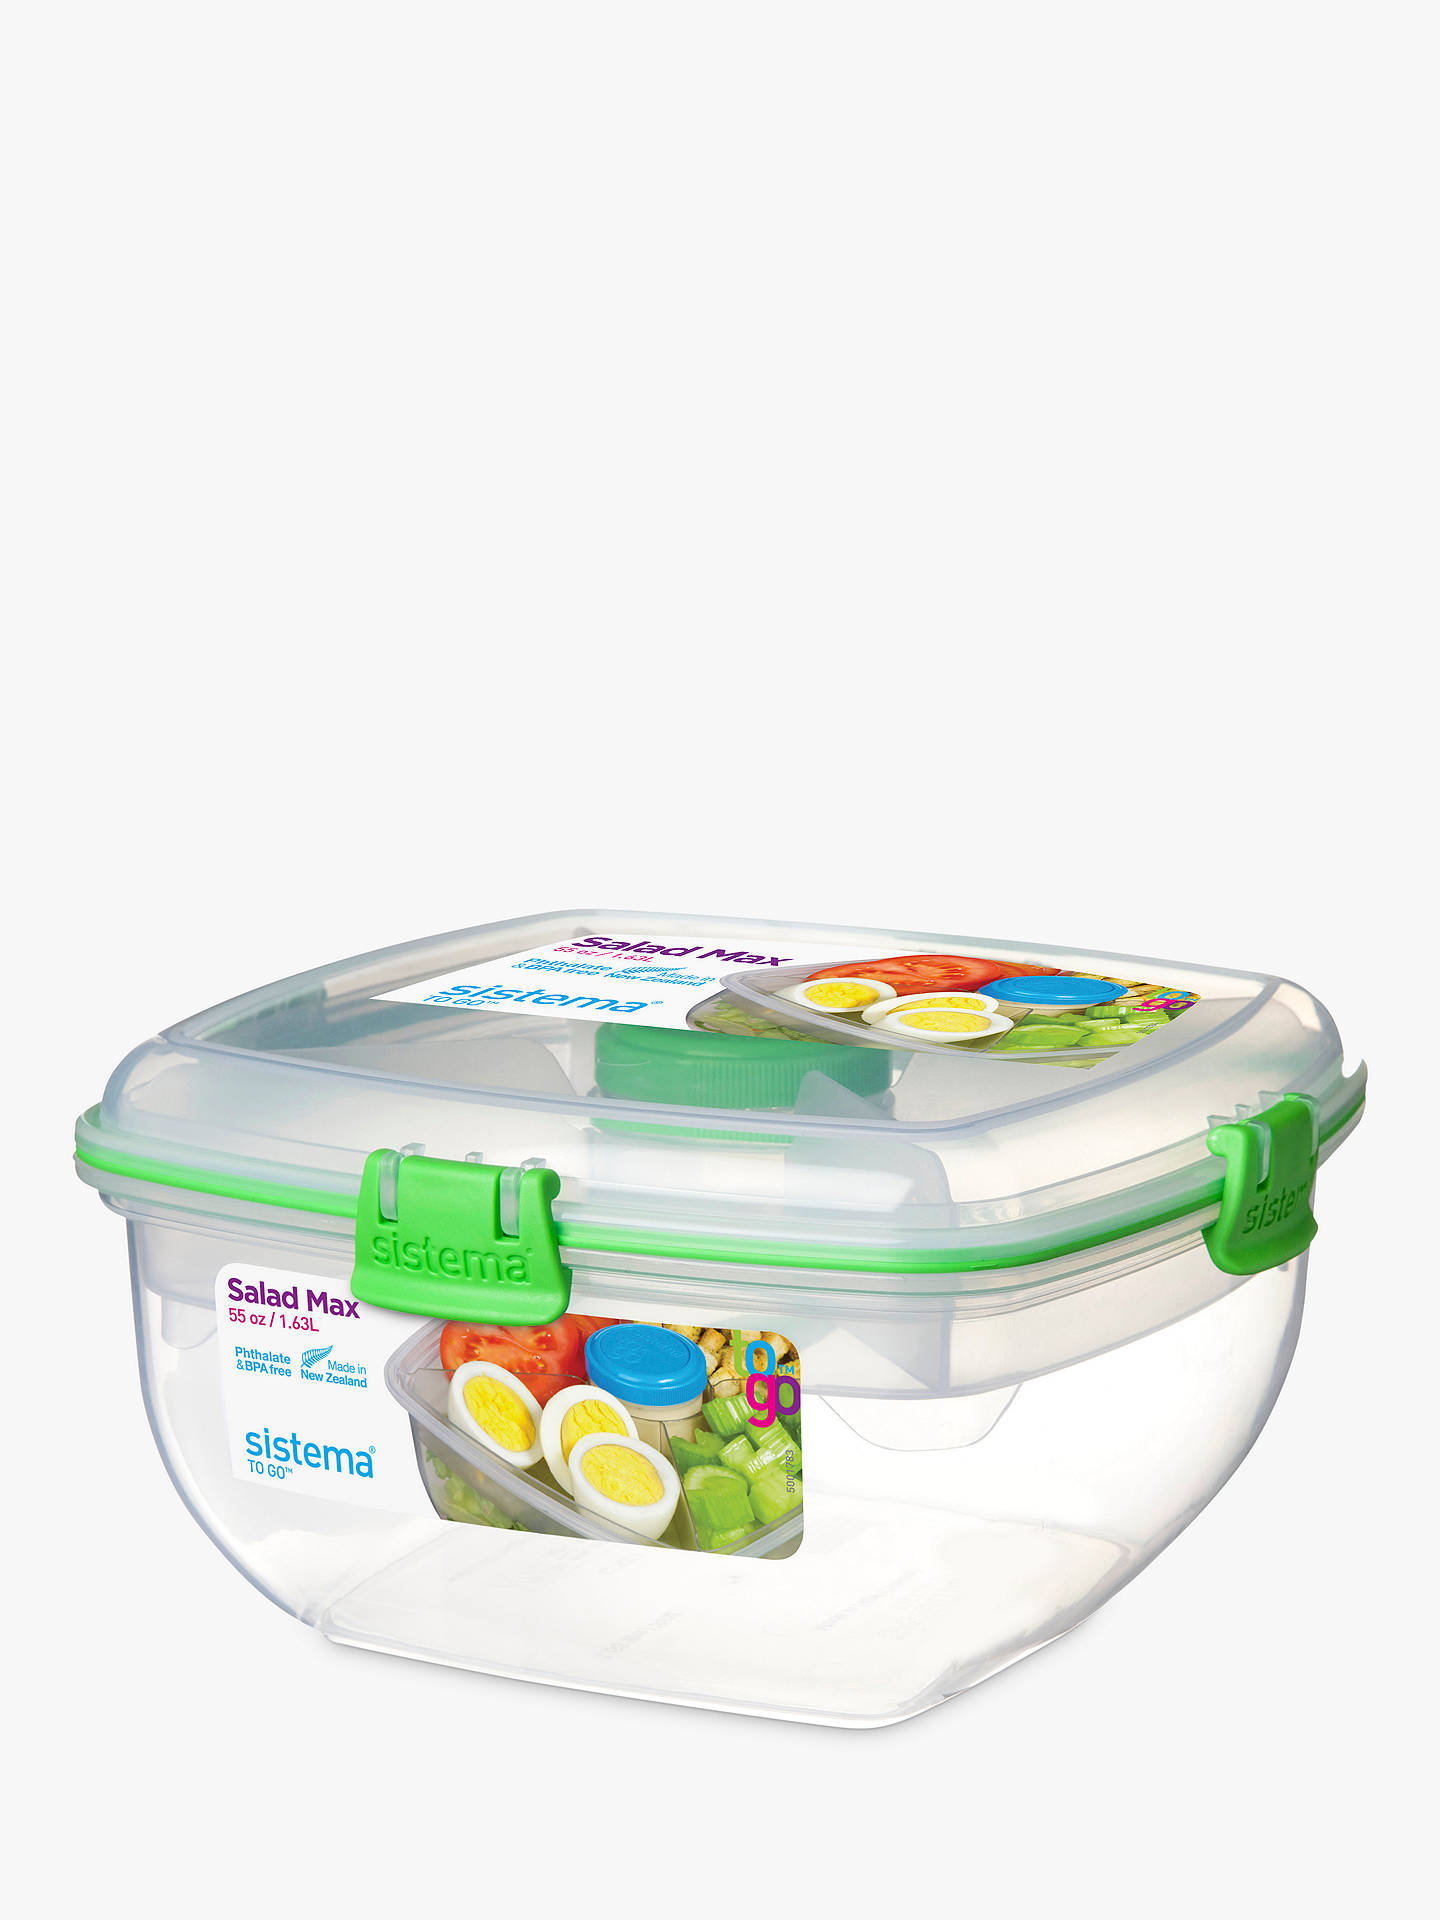 Buy Sistema Salad To Go Max Food Storage Container Online at johnlewis.com